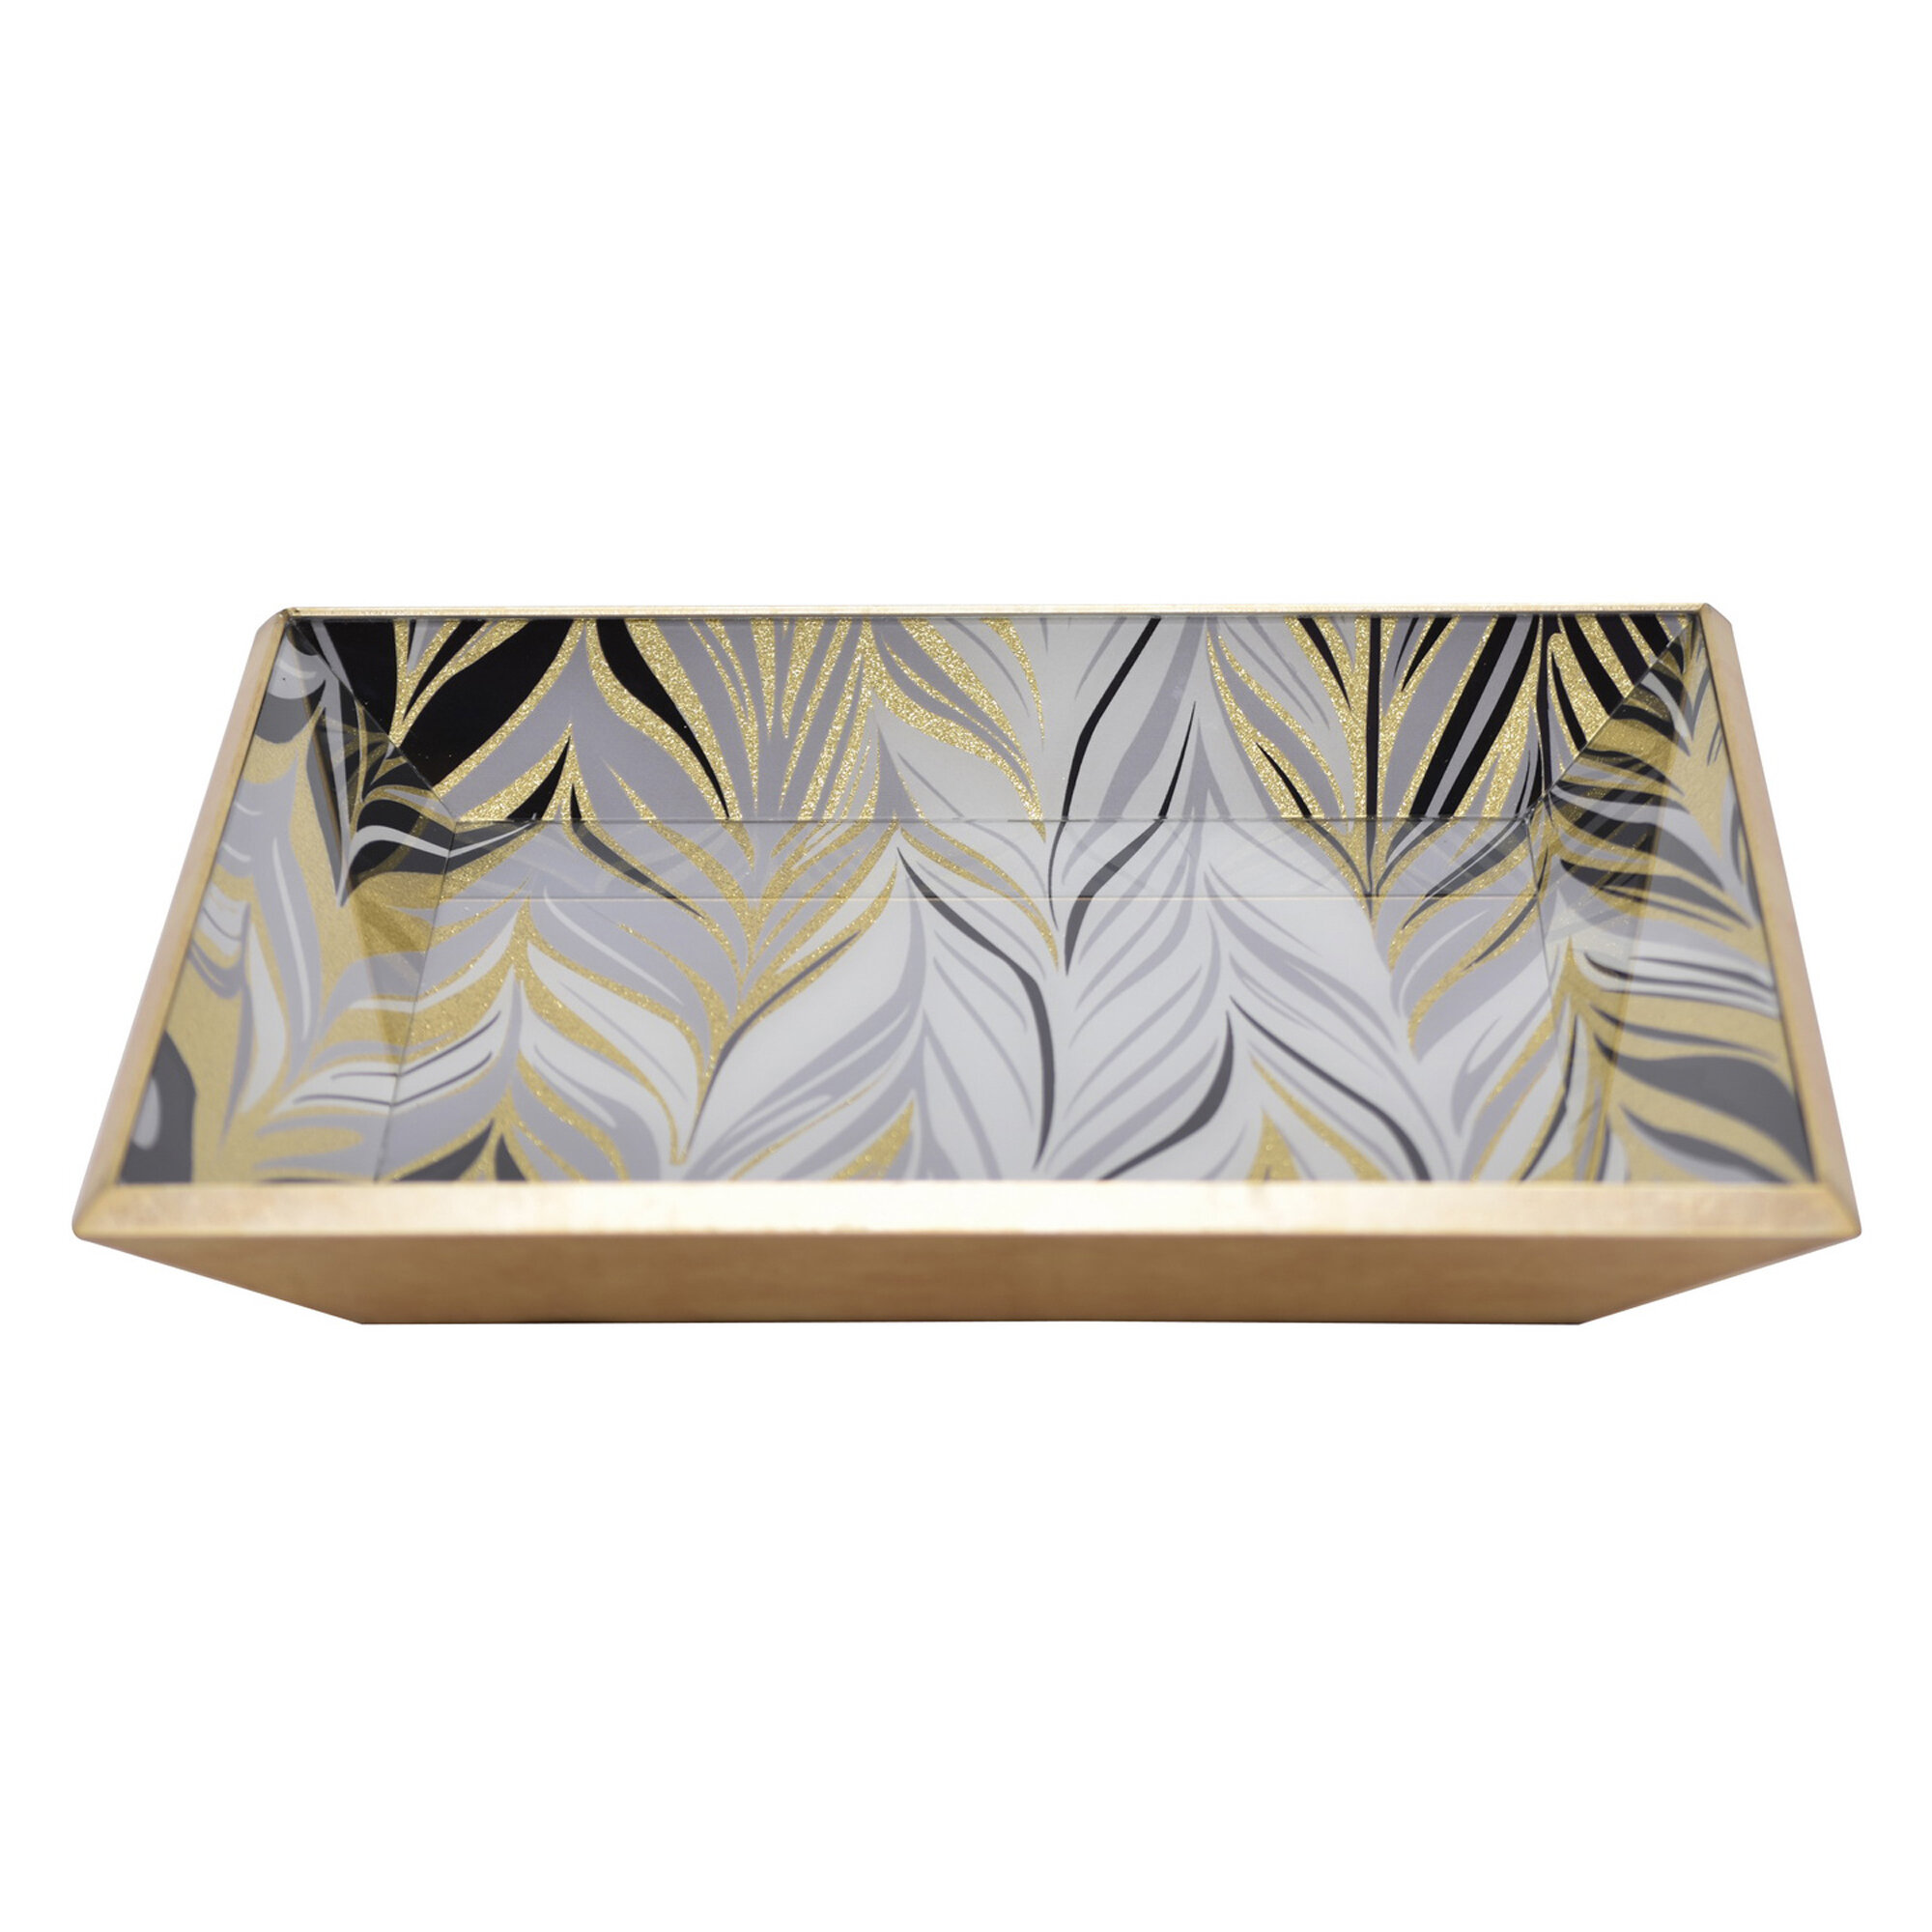 Mercer41 Meyer Glass Ottoman Coffee Table Tray Wayfair